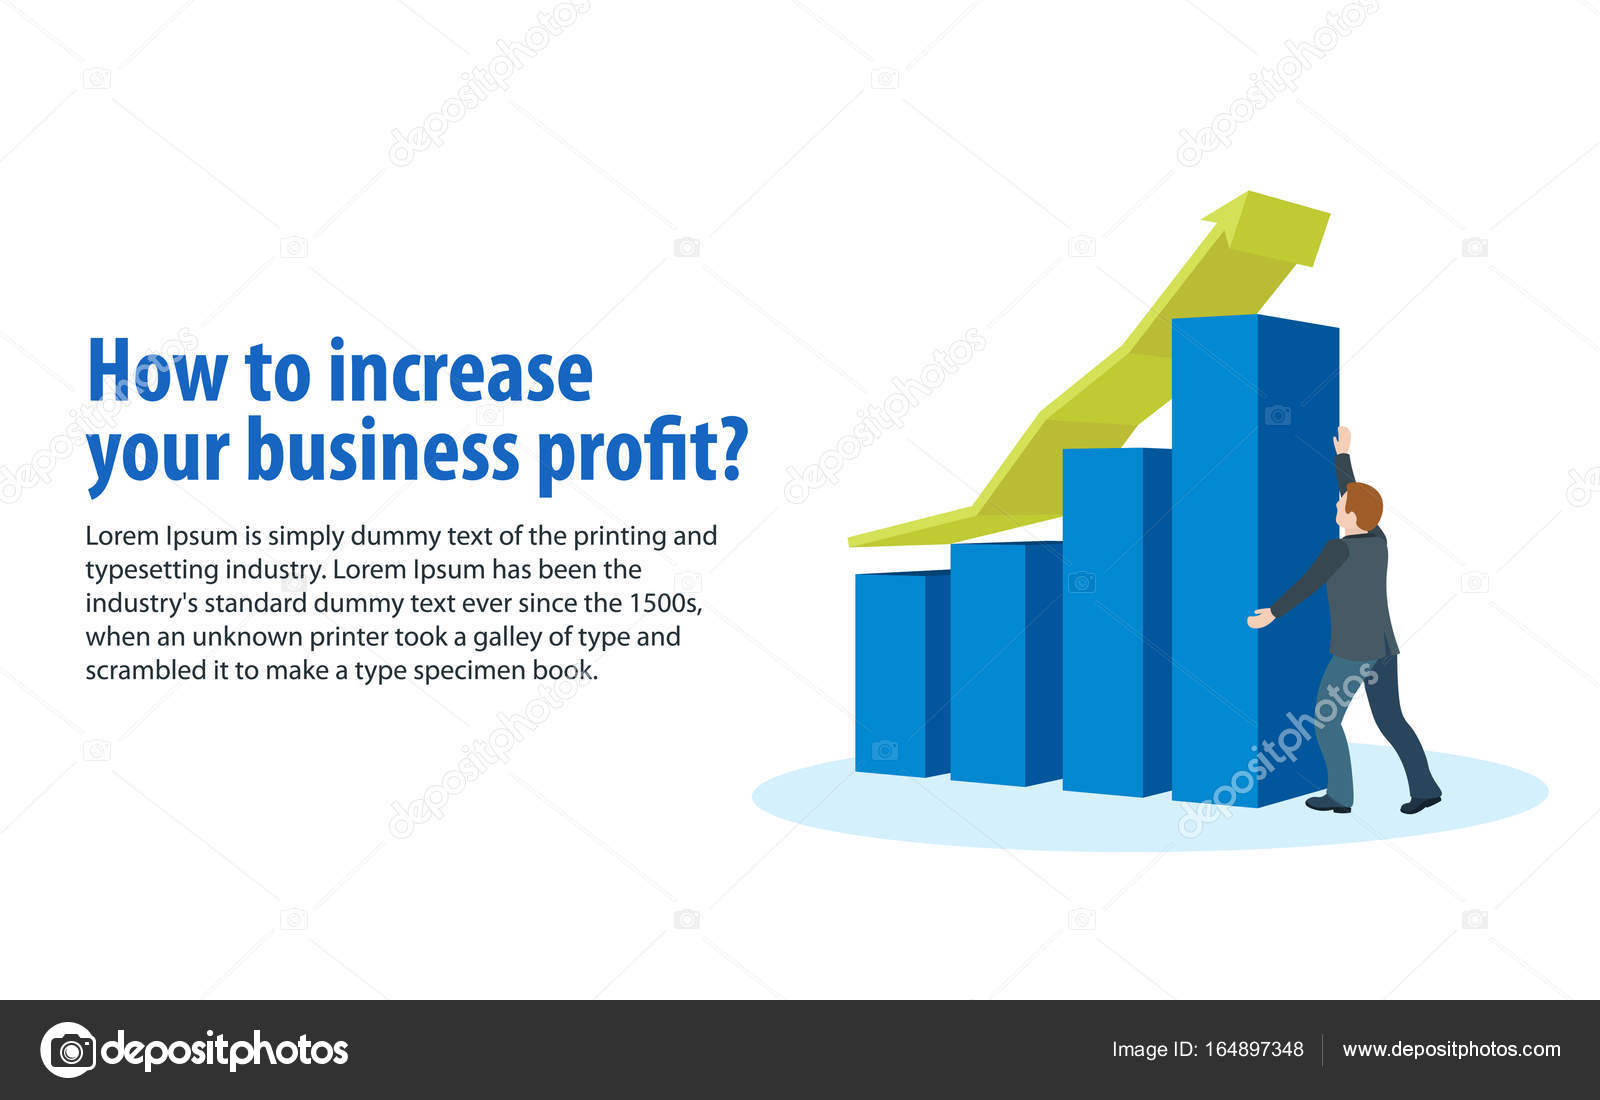 How to increase business profits in a taxi 18